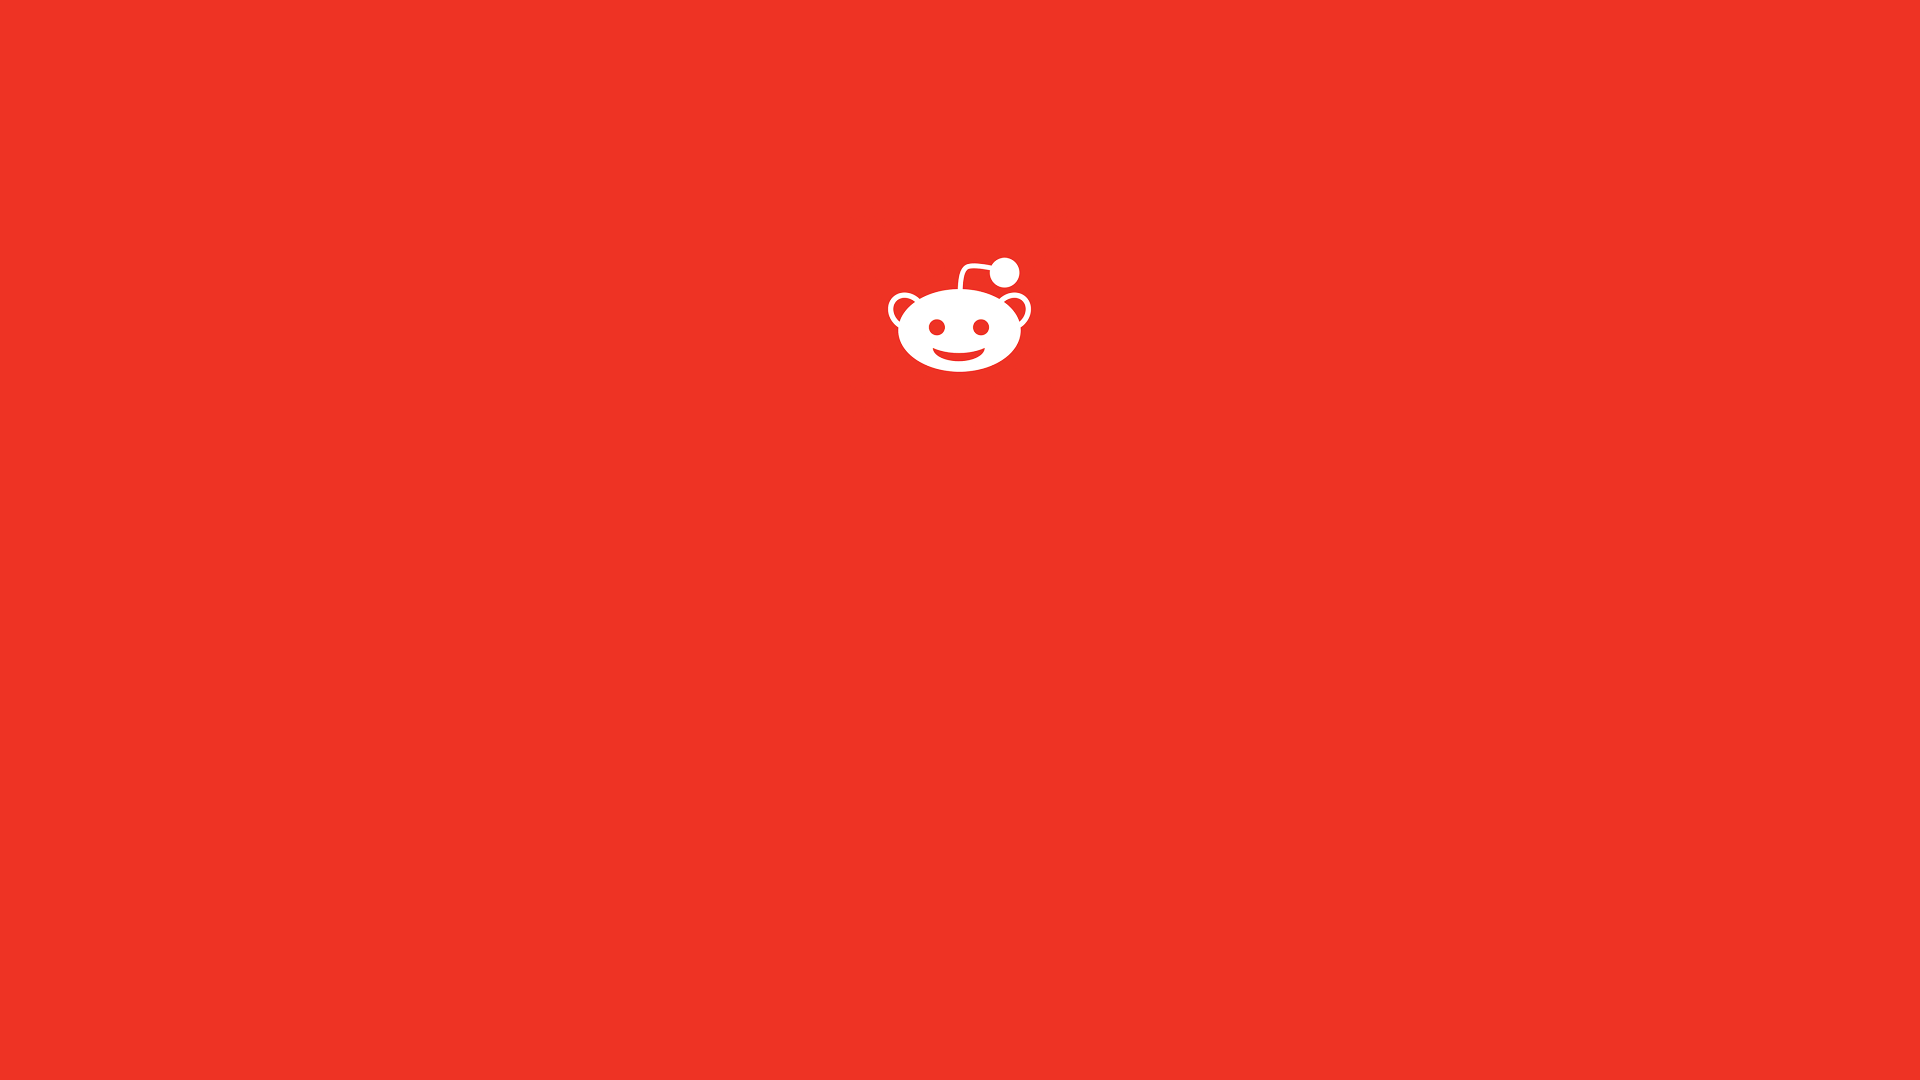 Reddit Marketing is Real: Use Social Mentions To Inform Your Campaigns